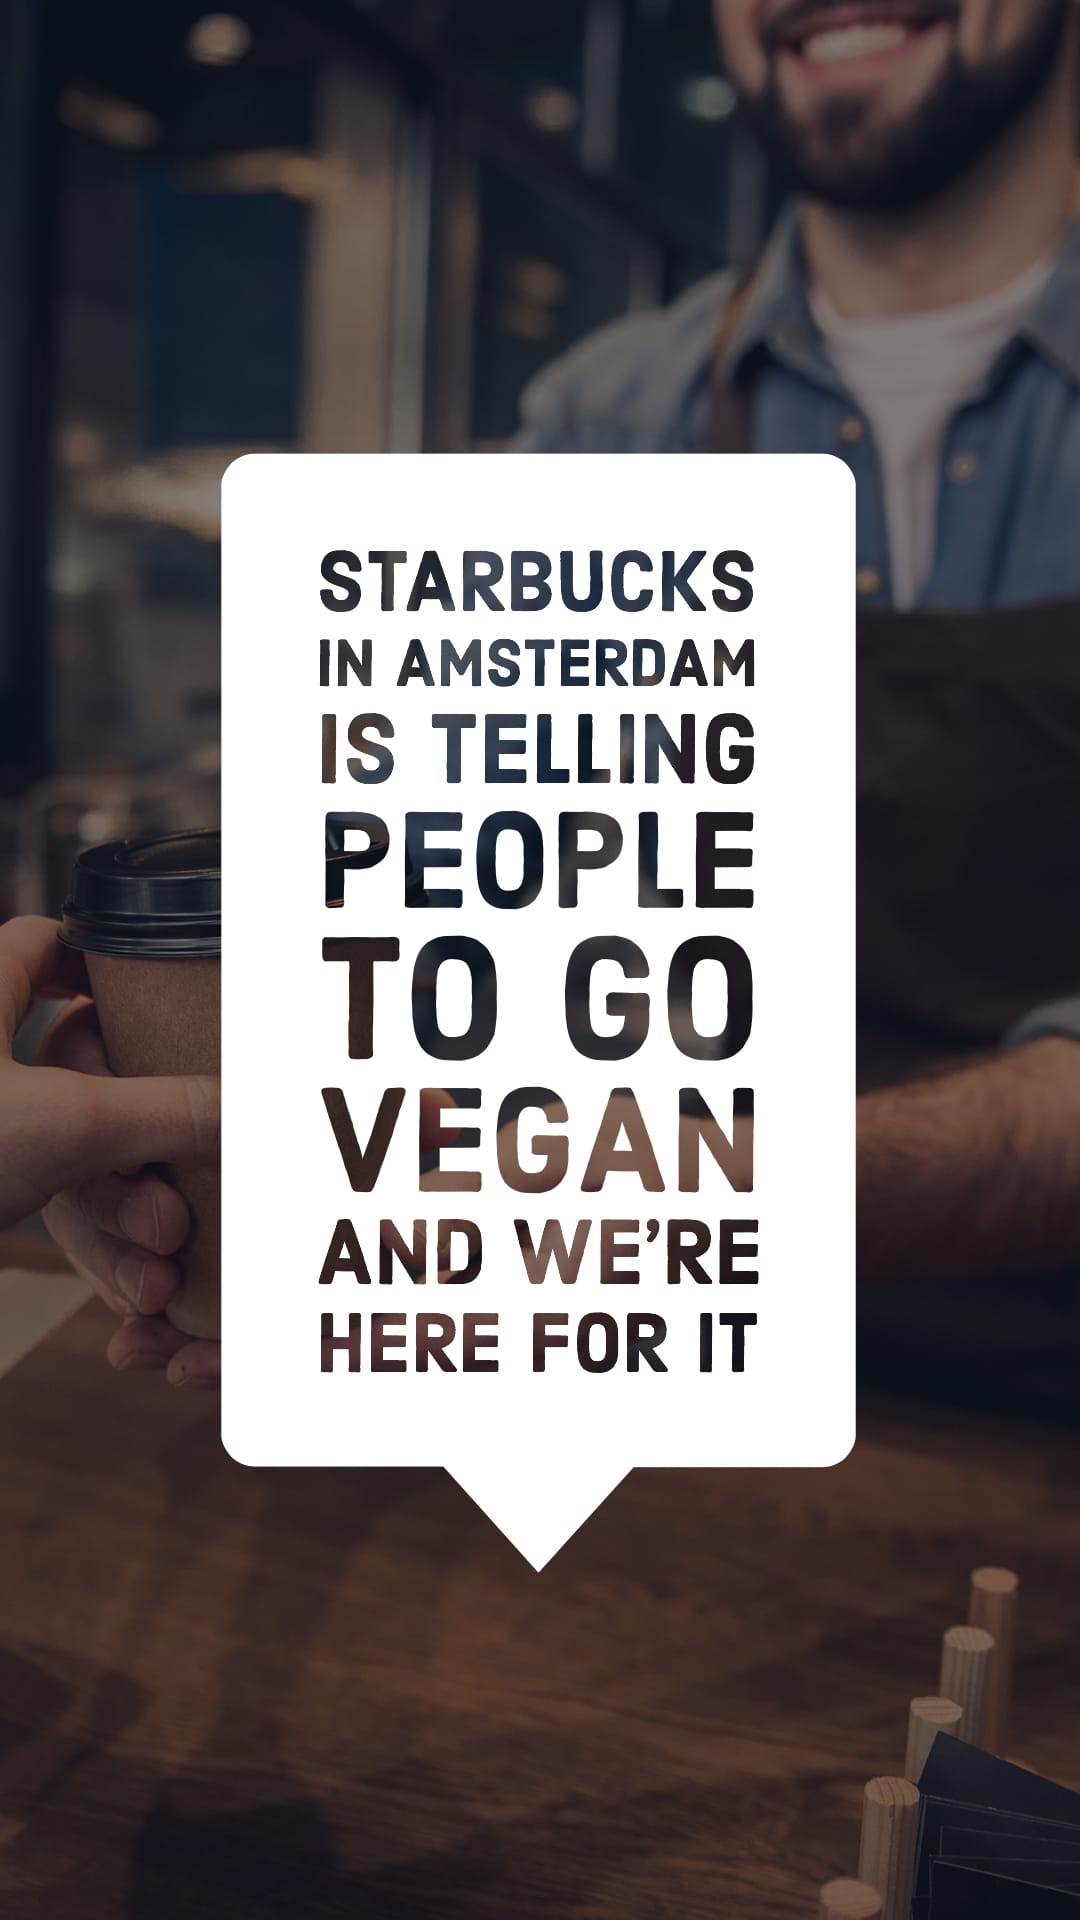 Starbucks in Amsterdam Is Telling People to Go Vegan and We're Here for It